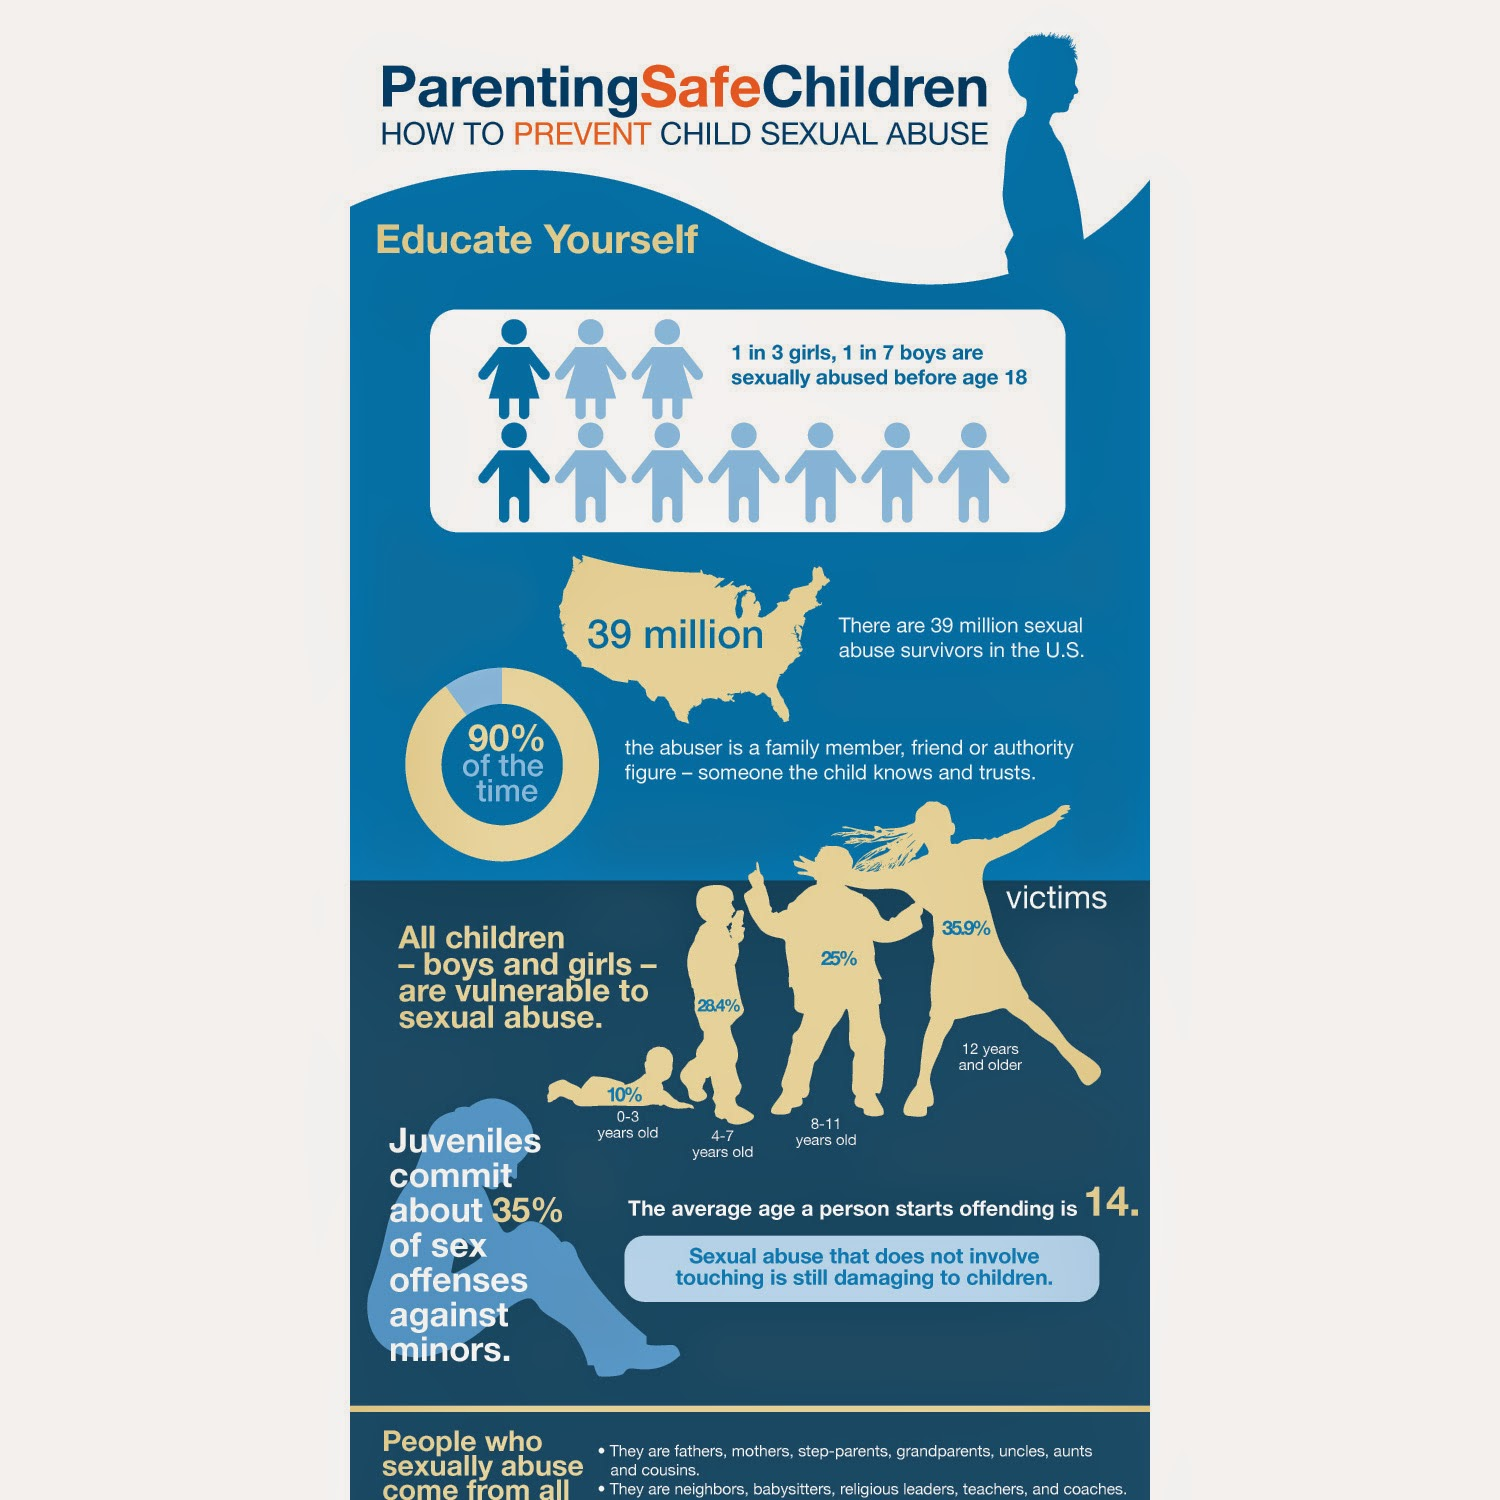 child sexual abuse prevention Abuse prevention systems provides a 5-part safety system to protect children and those who serve them in churches and child-serving organizations.